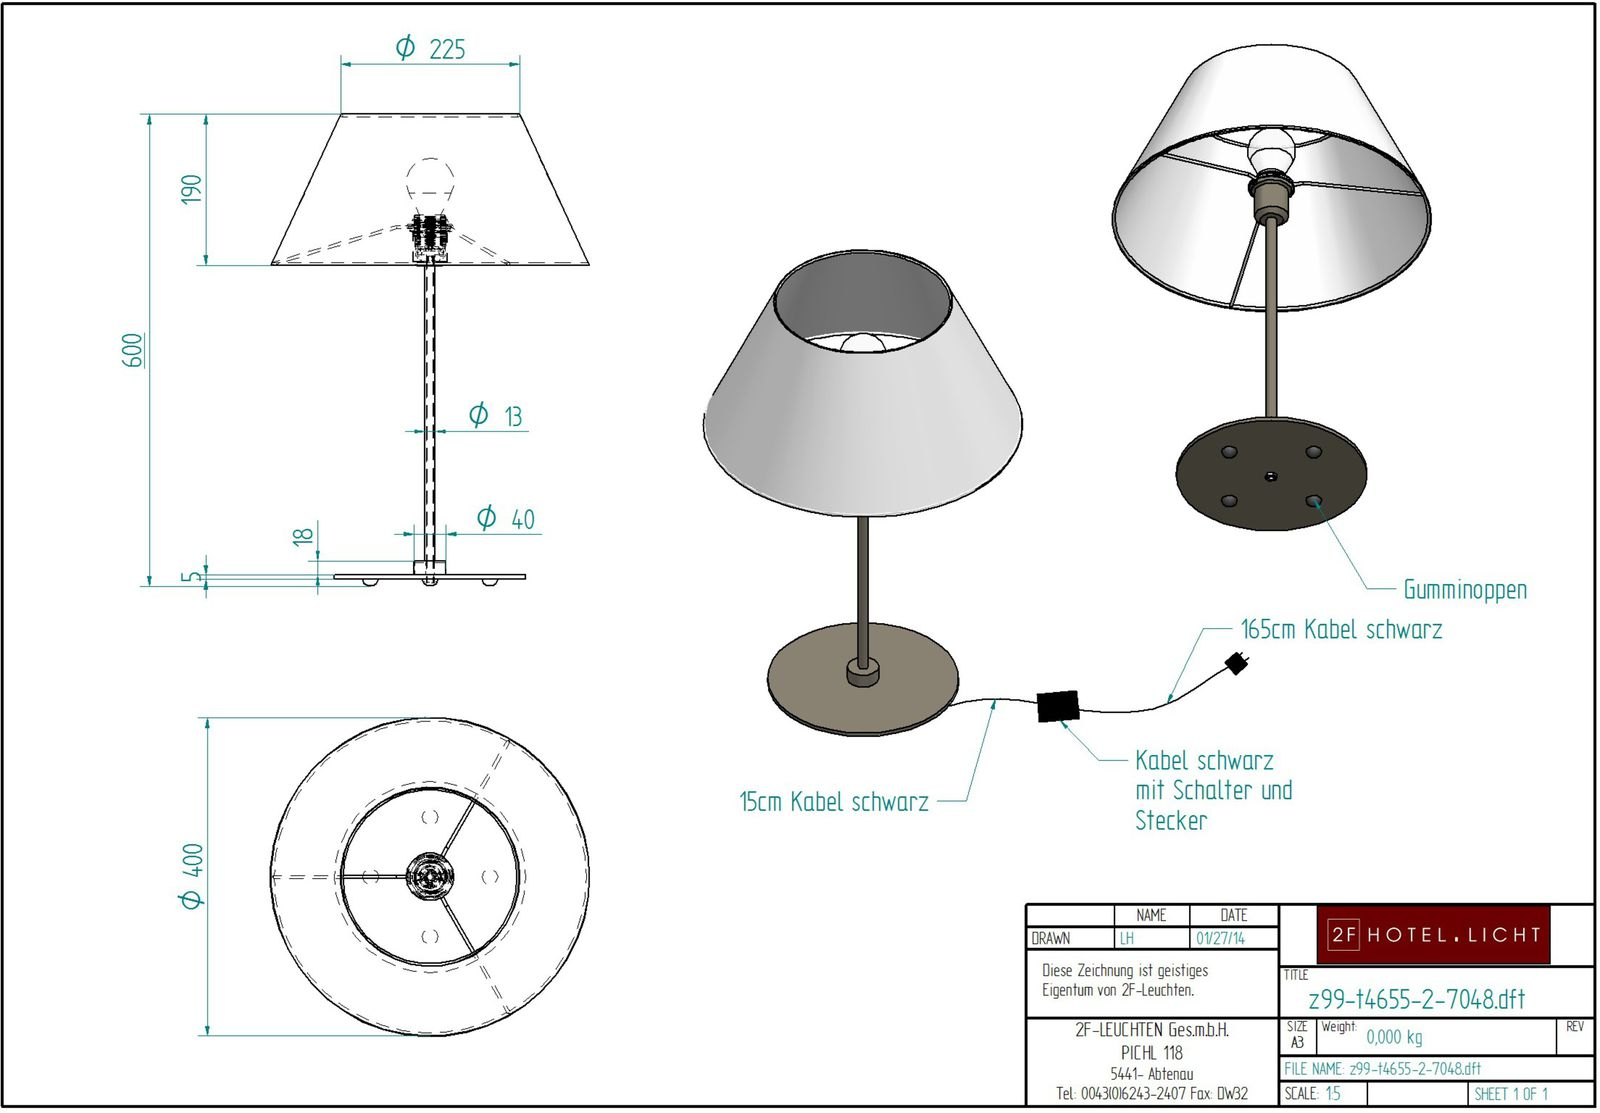 table lamp 1 flg., height=610mm, base plate Ø=180mm, shade: height=250mm, wide 105x150mm, surface: chrom, techn. details: 1x27, 28W